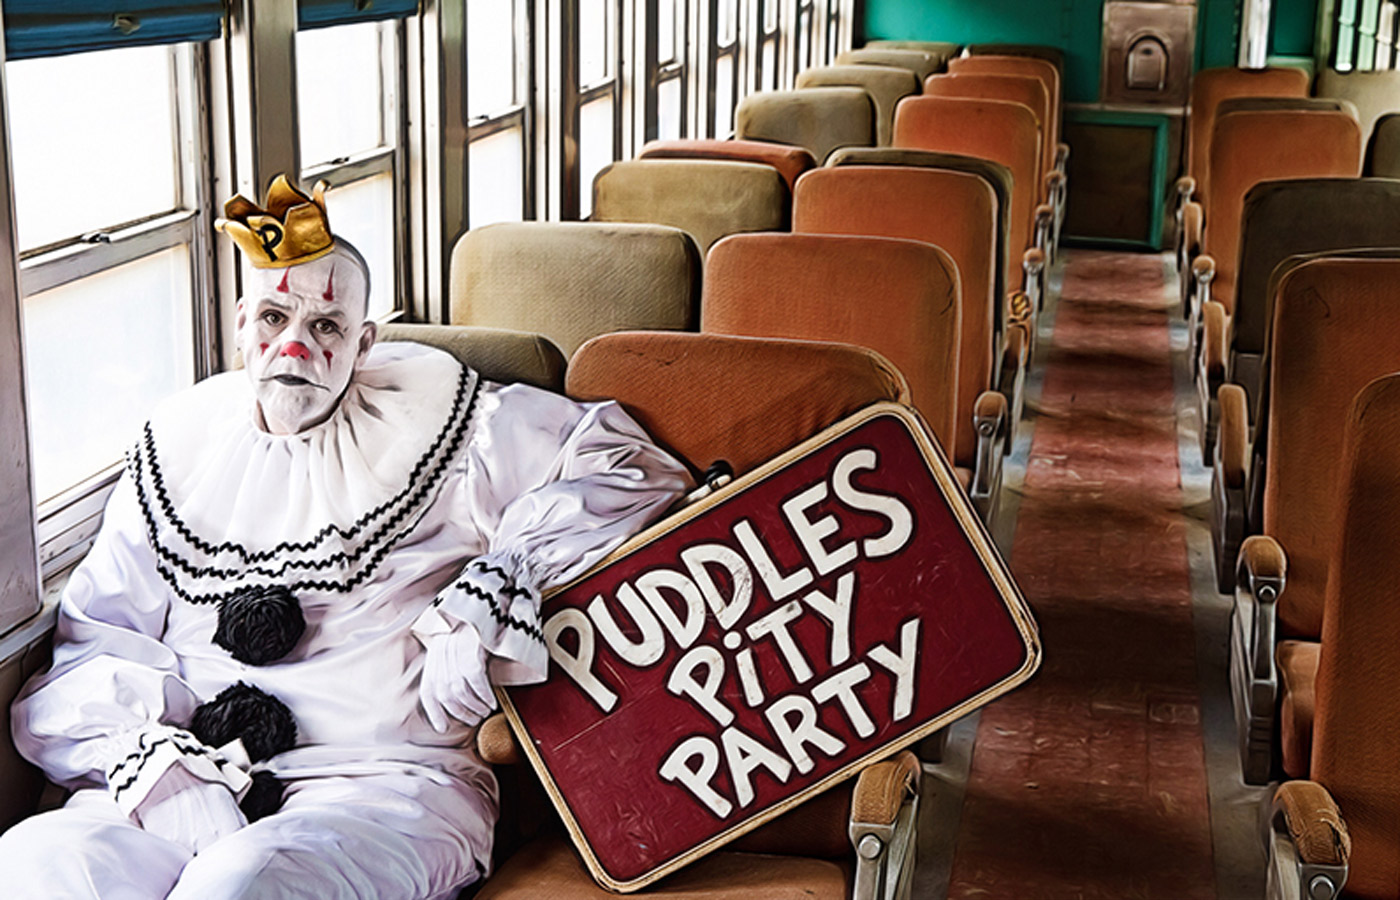 puddles pity party sad clown with a golden voice iowa source